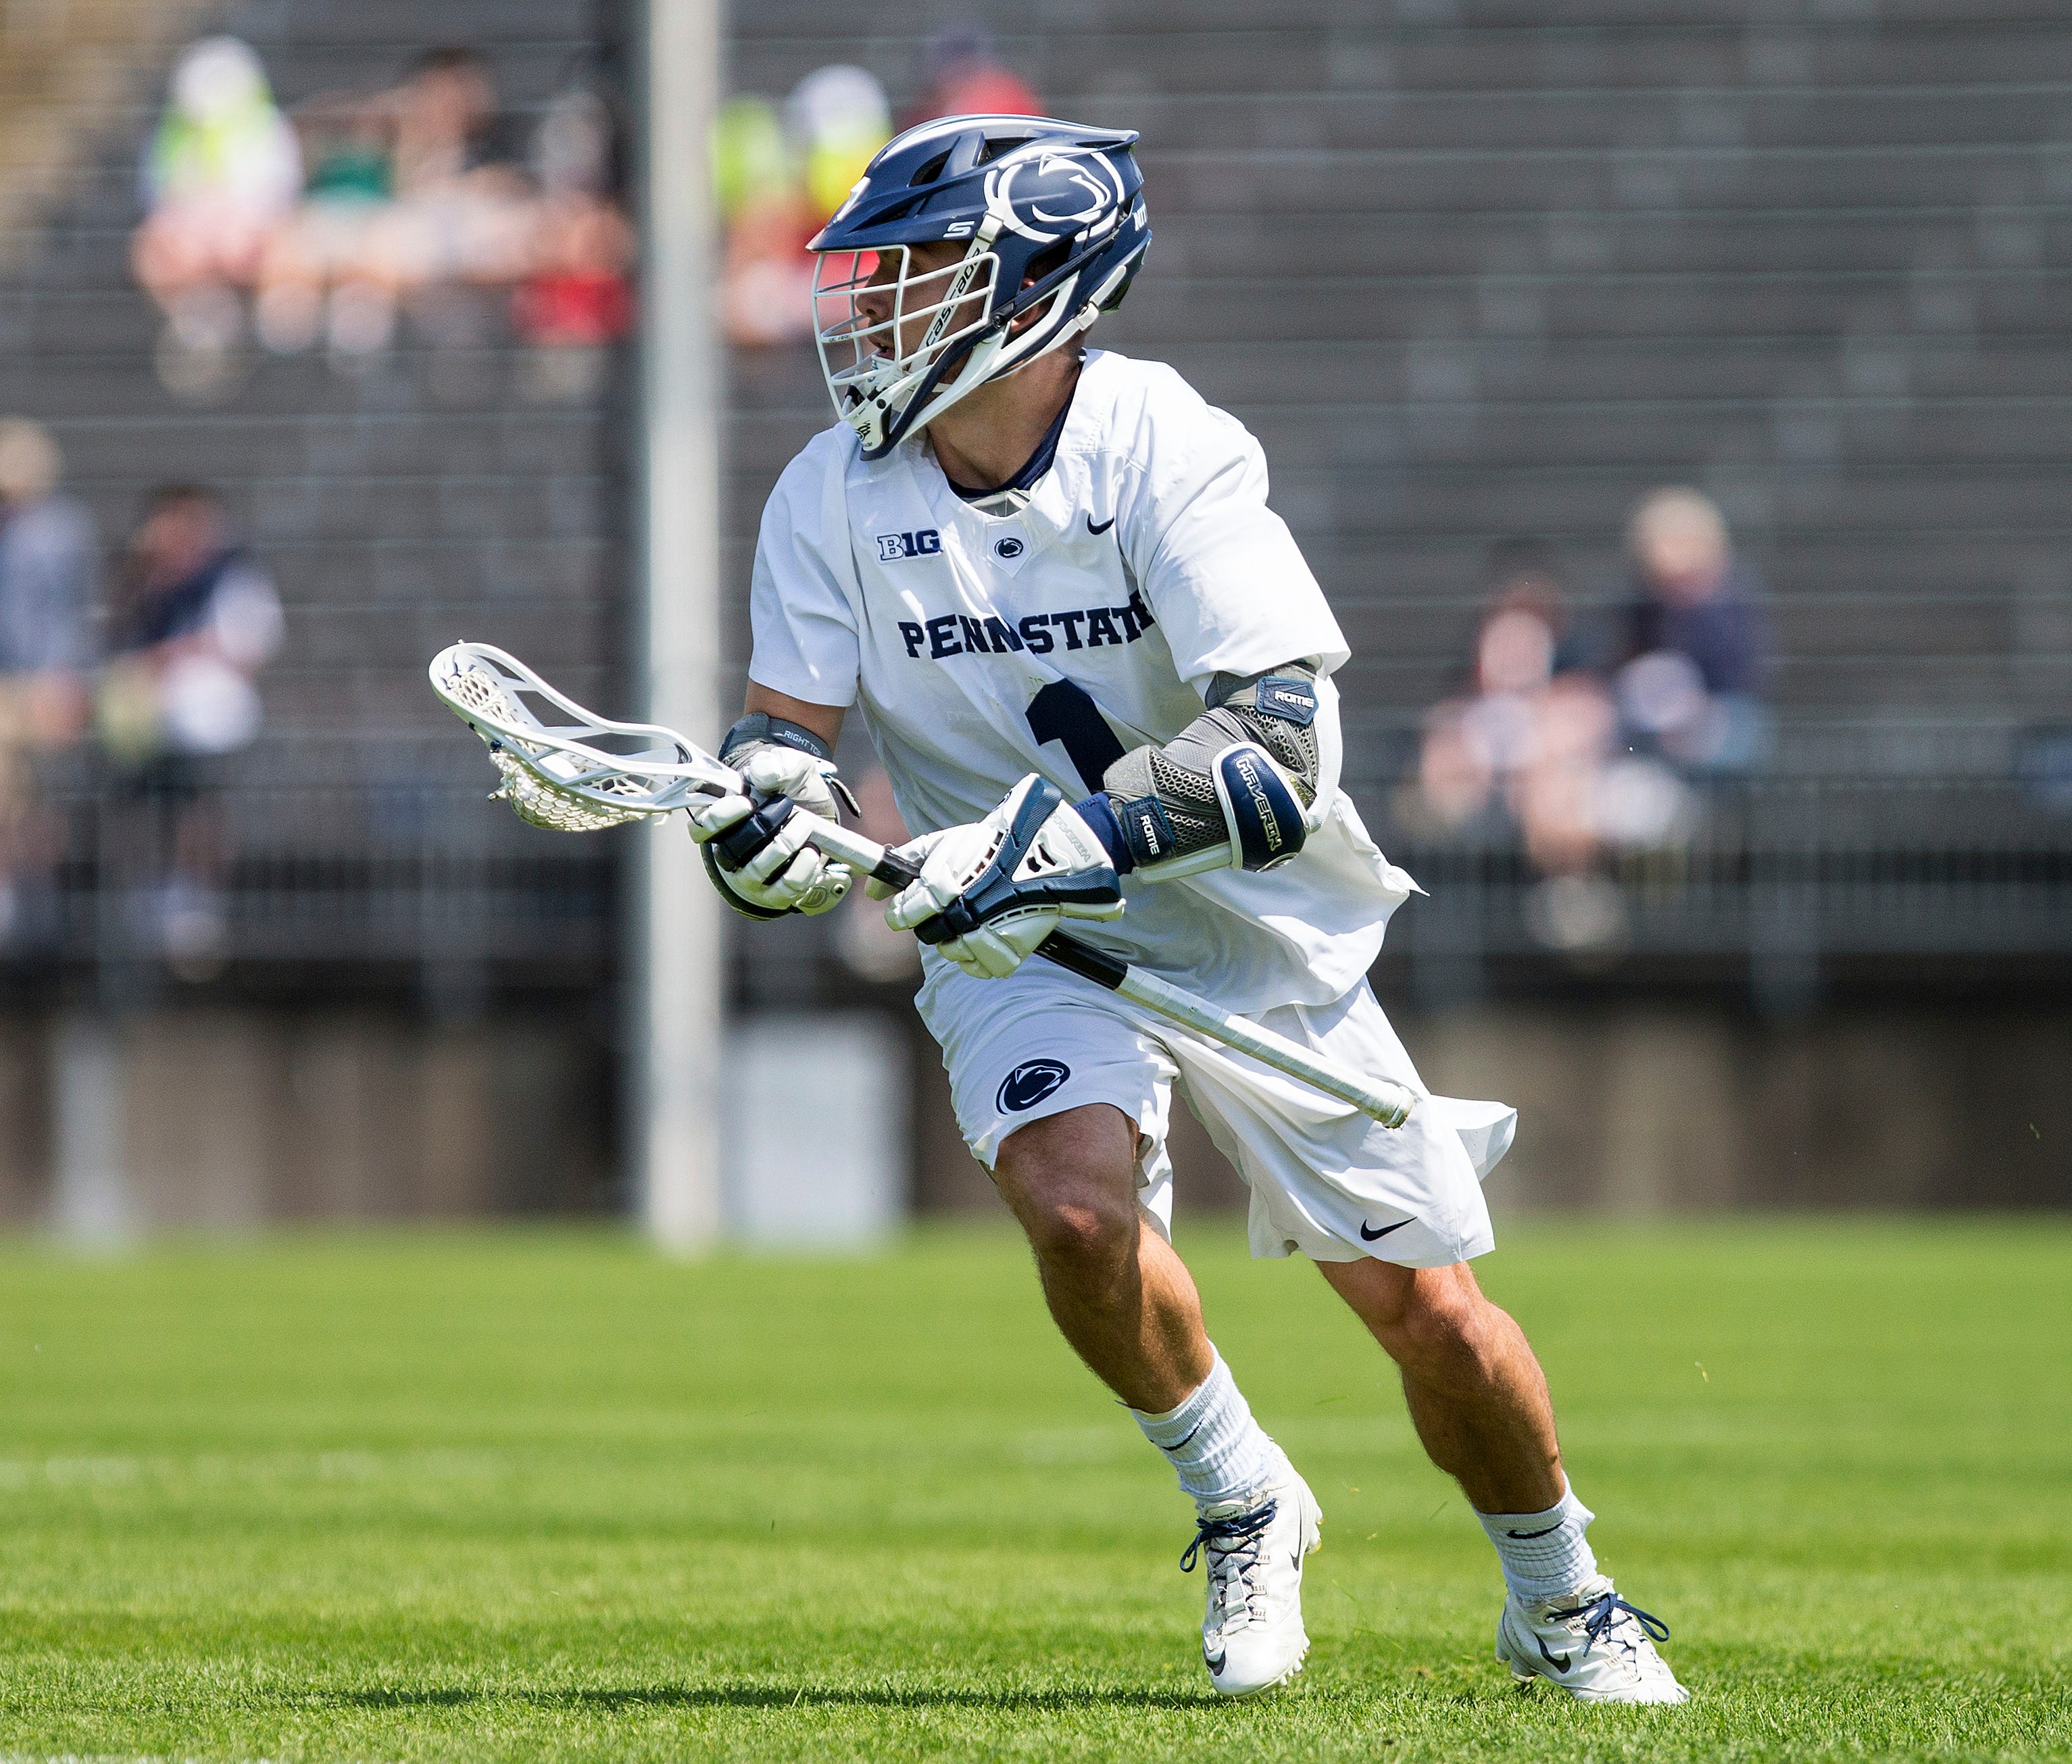 Penn State enters NCAA lacrosse Final Four as unlikely overwhelming favorite